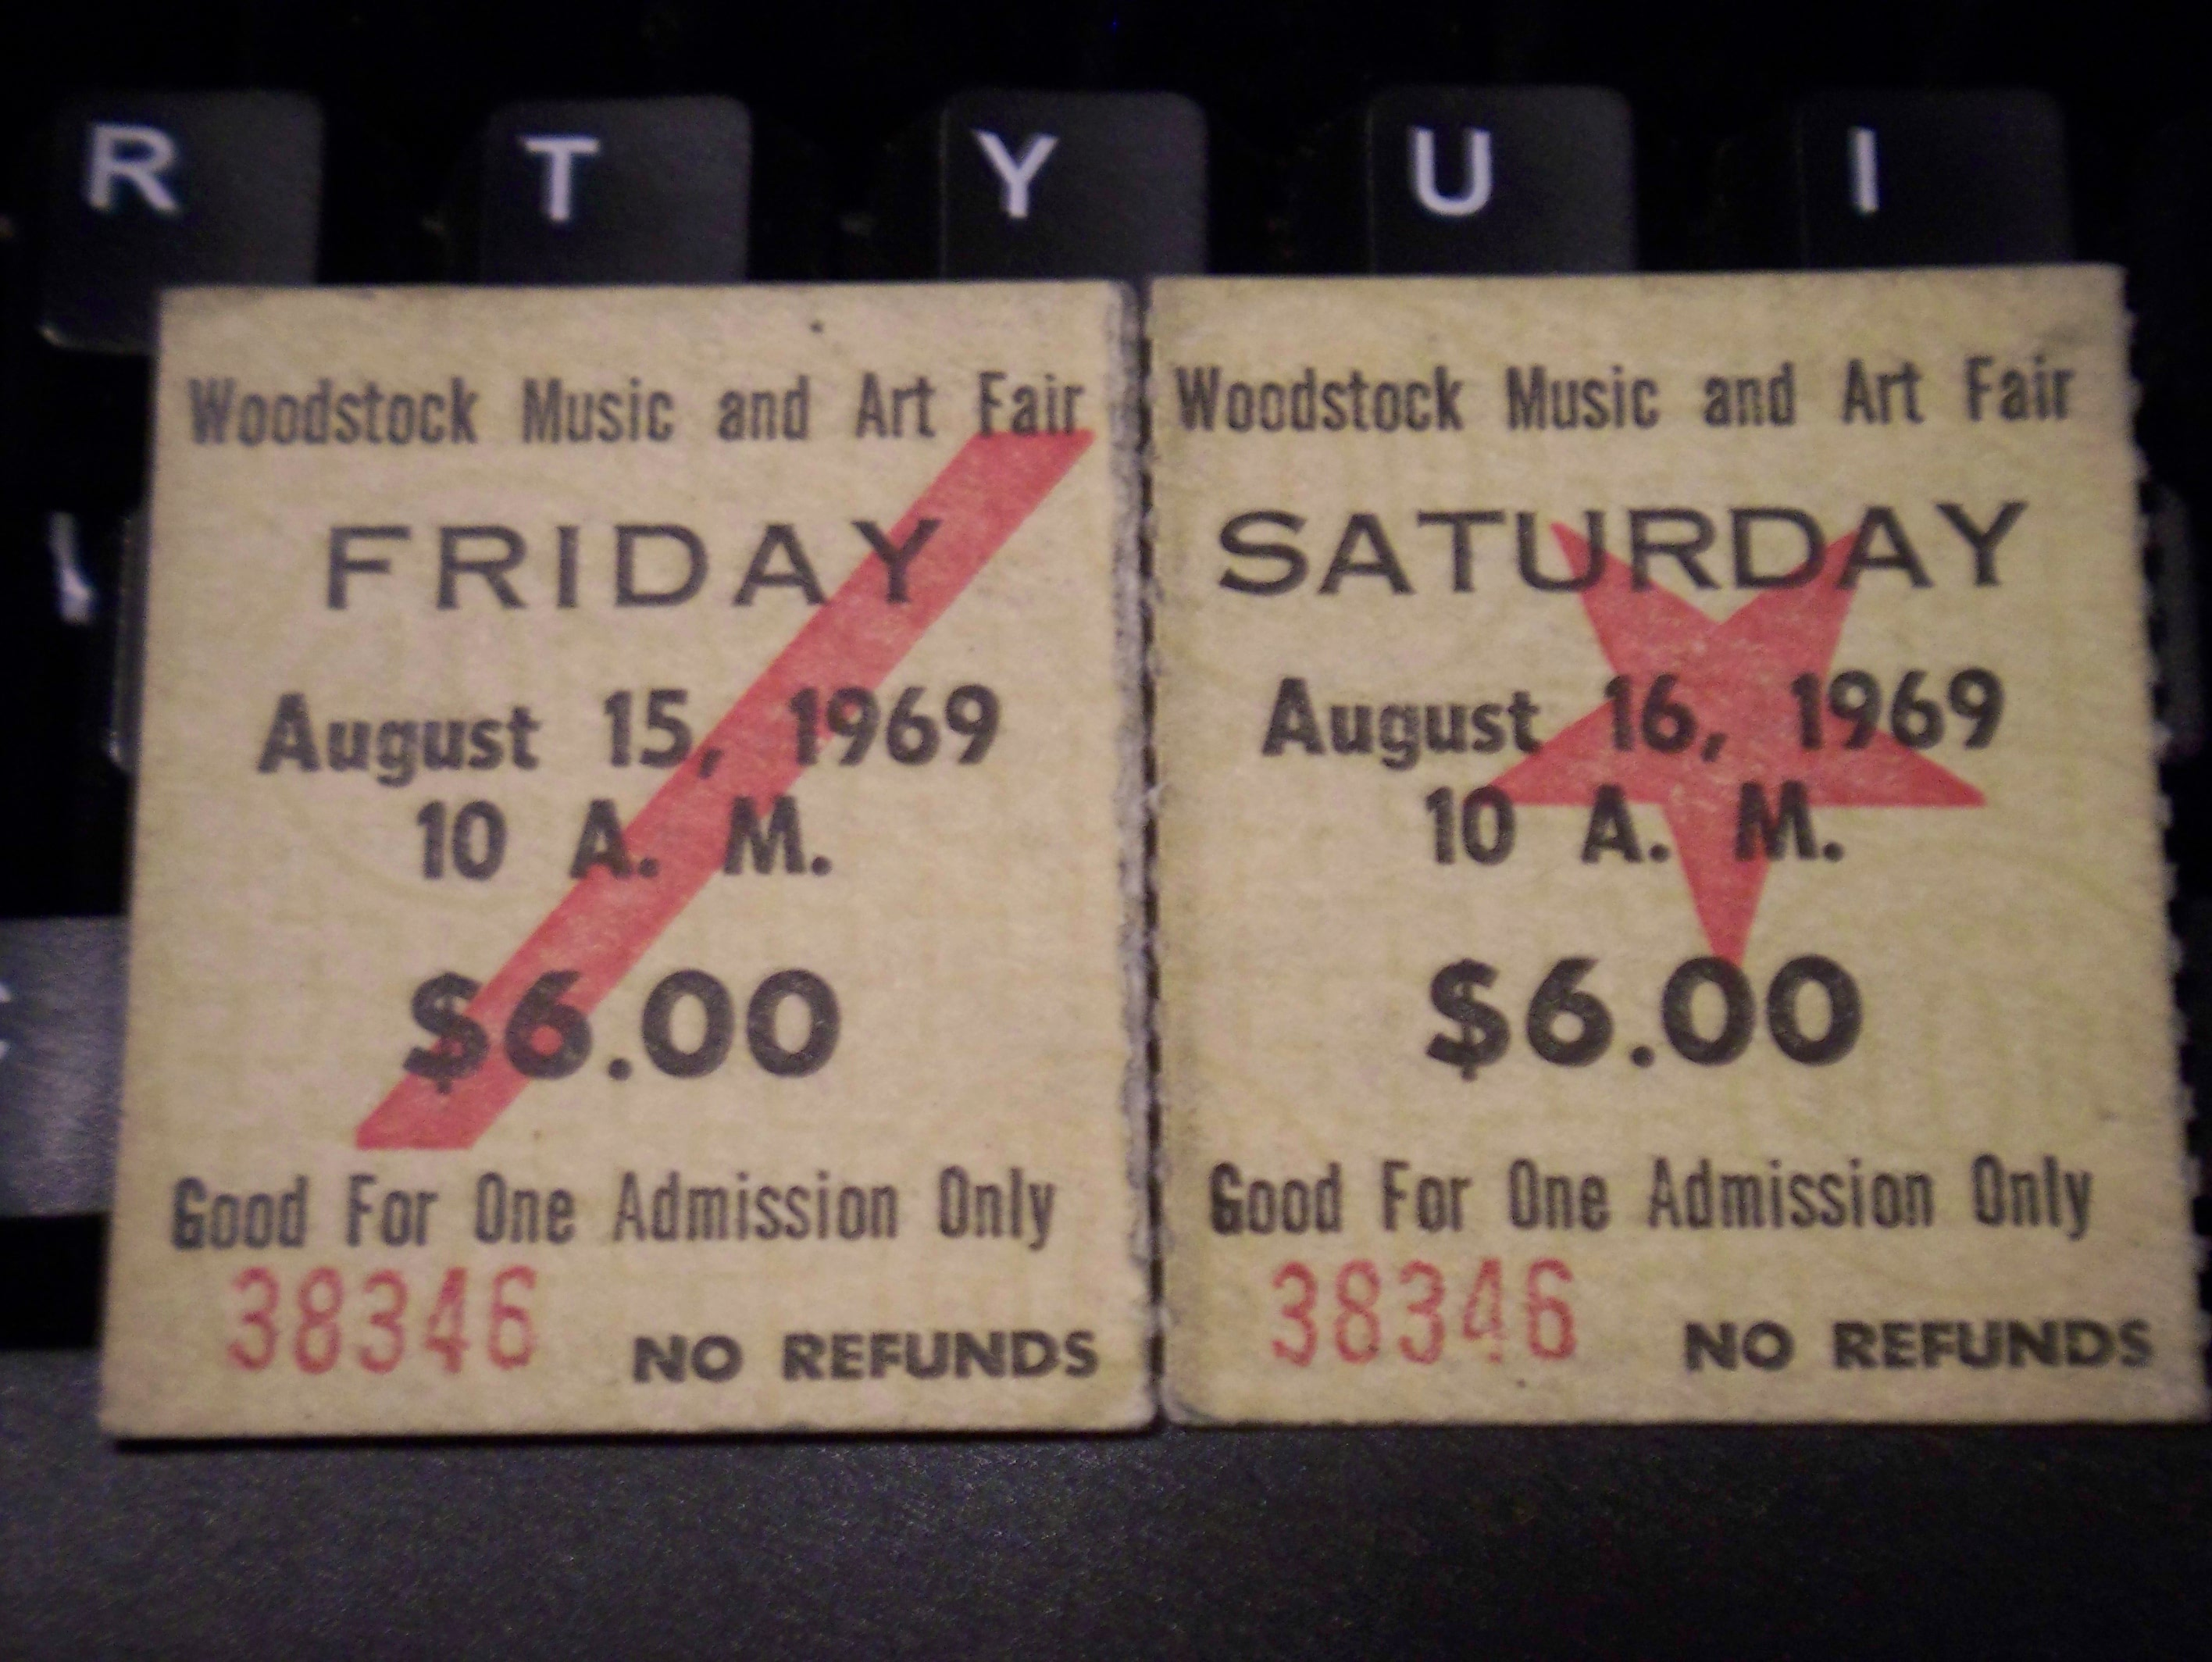 Woodstock tickets for Friday August 15th and Saturday August 16th, 1969